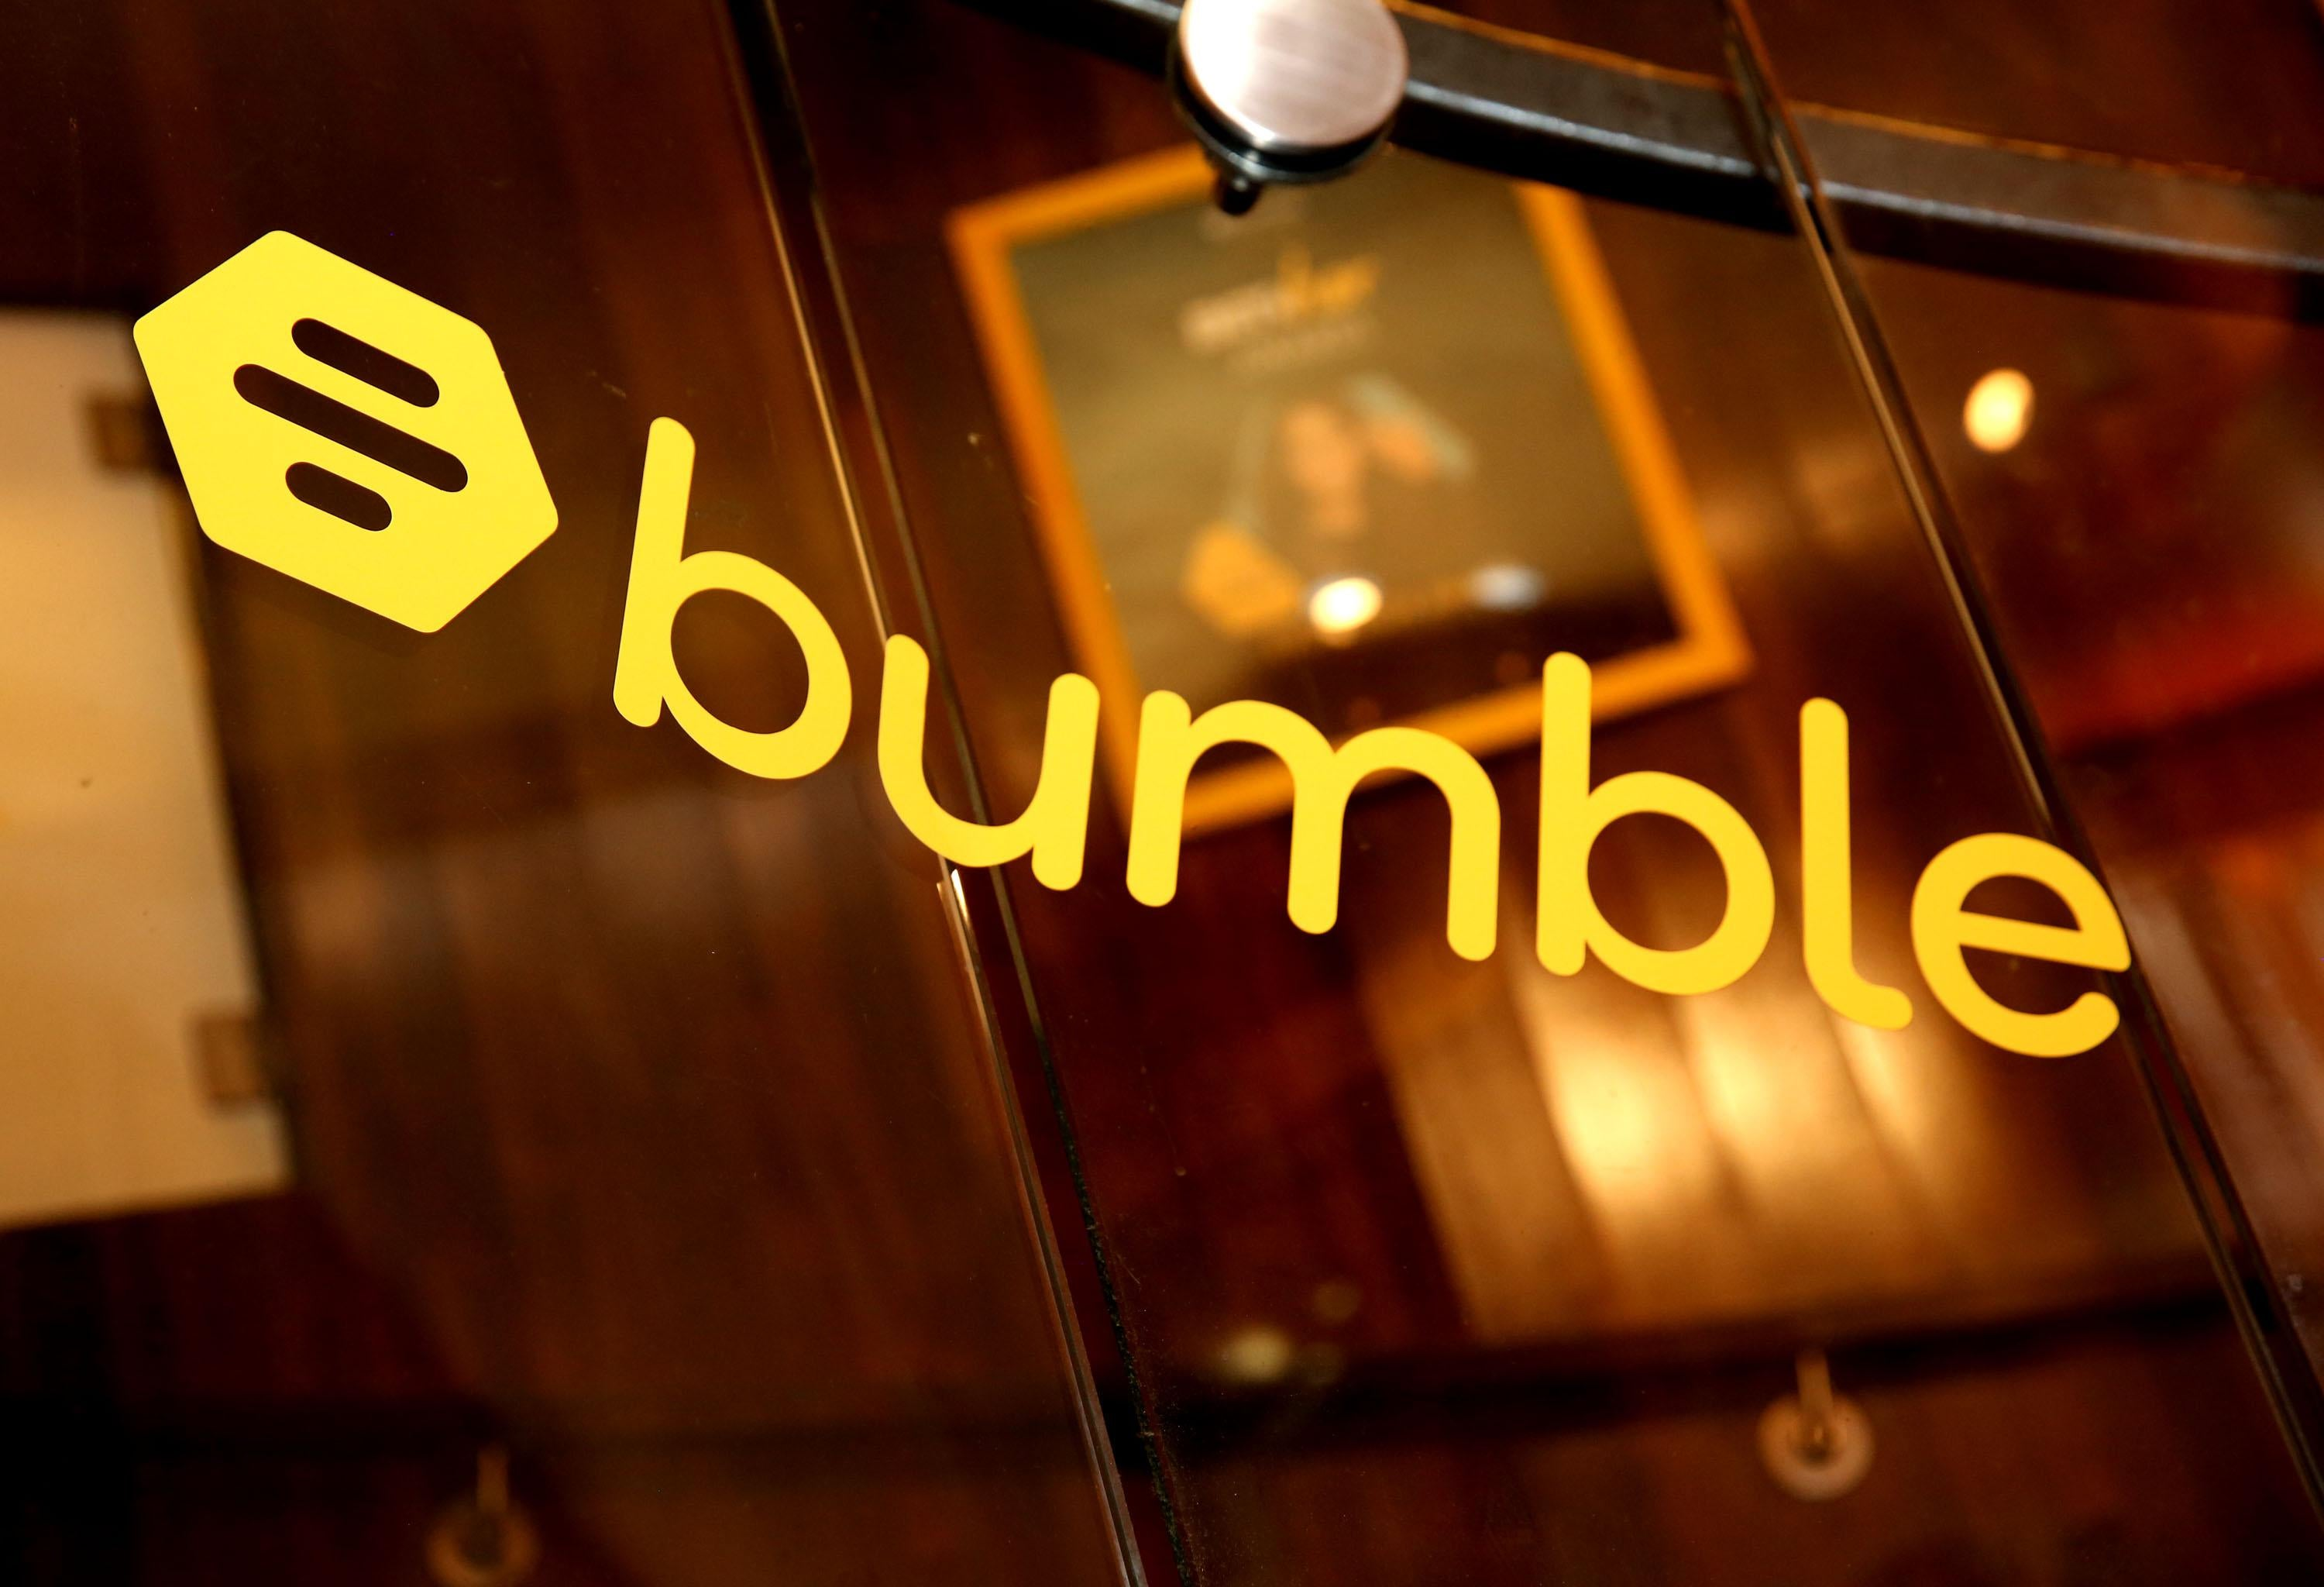 The logo for Bumble, a yellow bee hive, is printed on a glass wall.